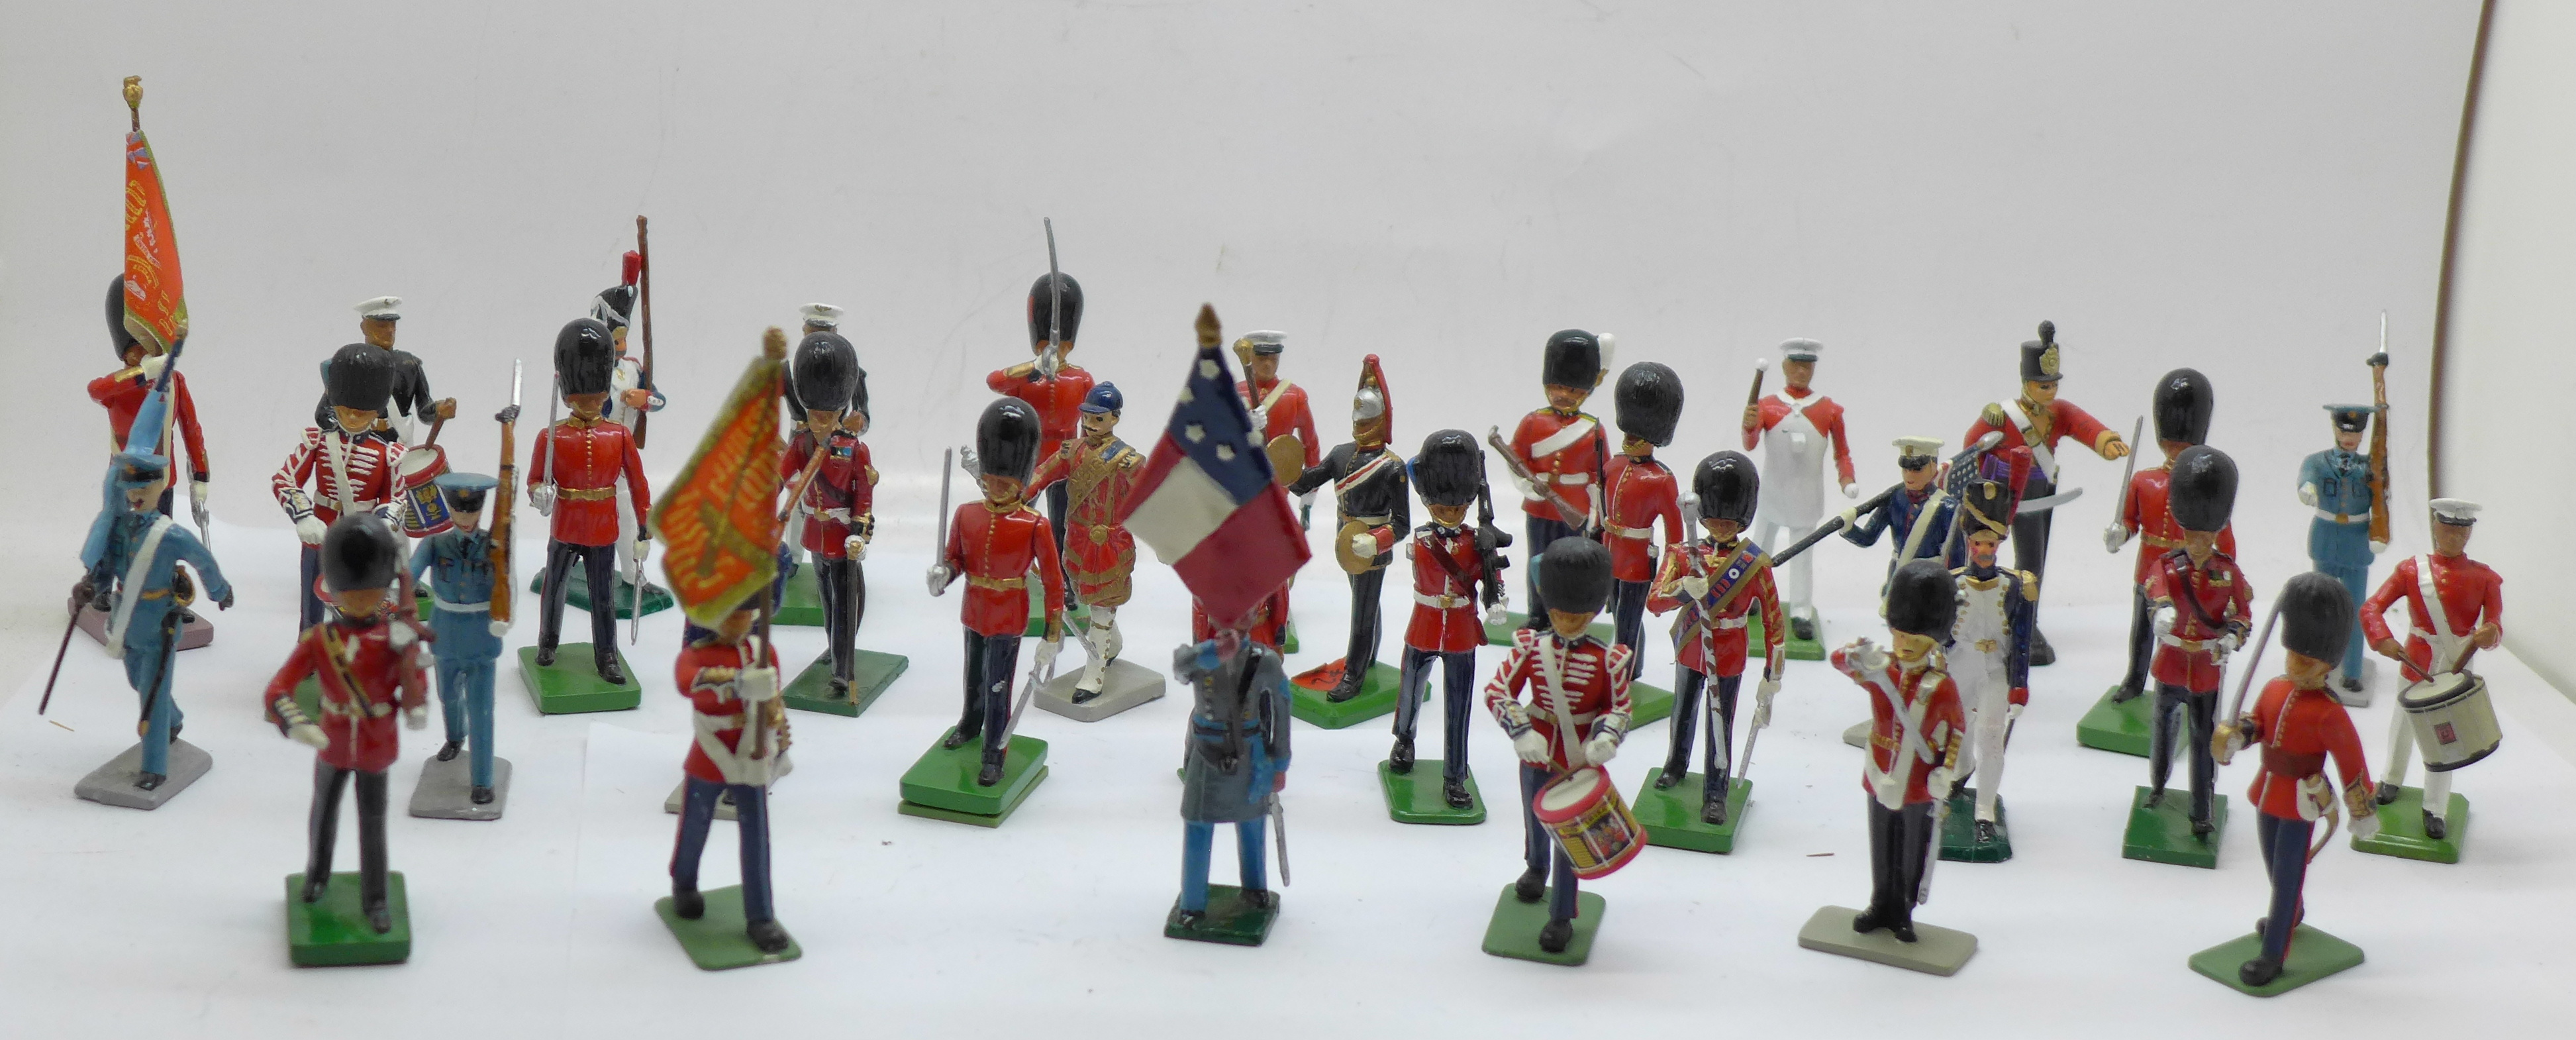 A collection of assorted metal military themed figures